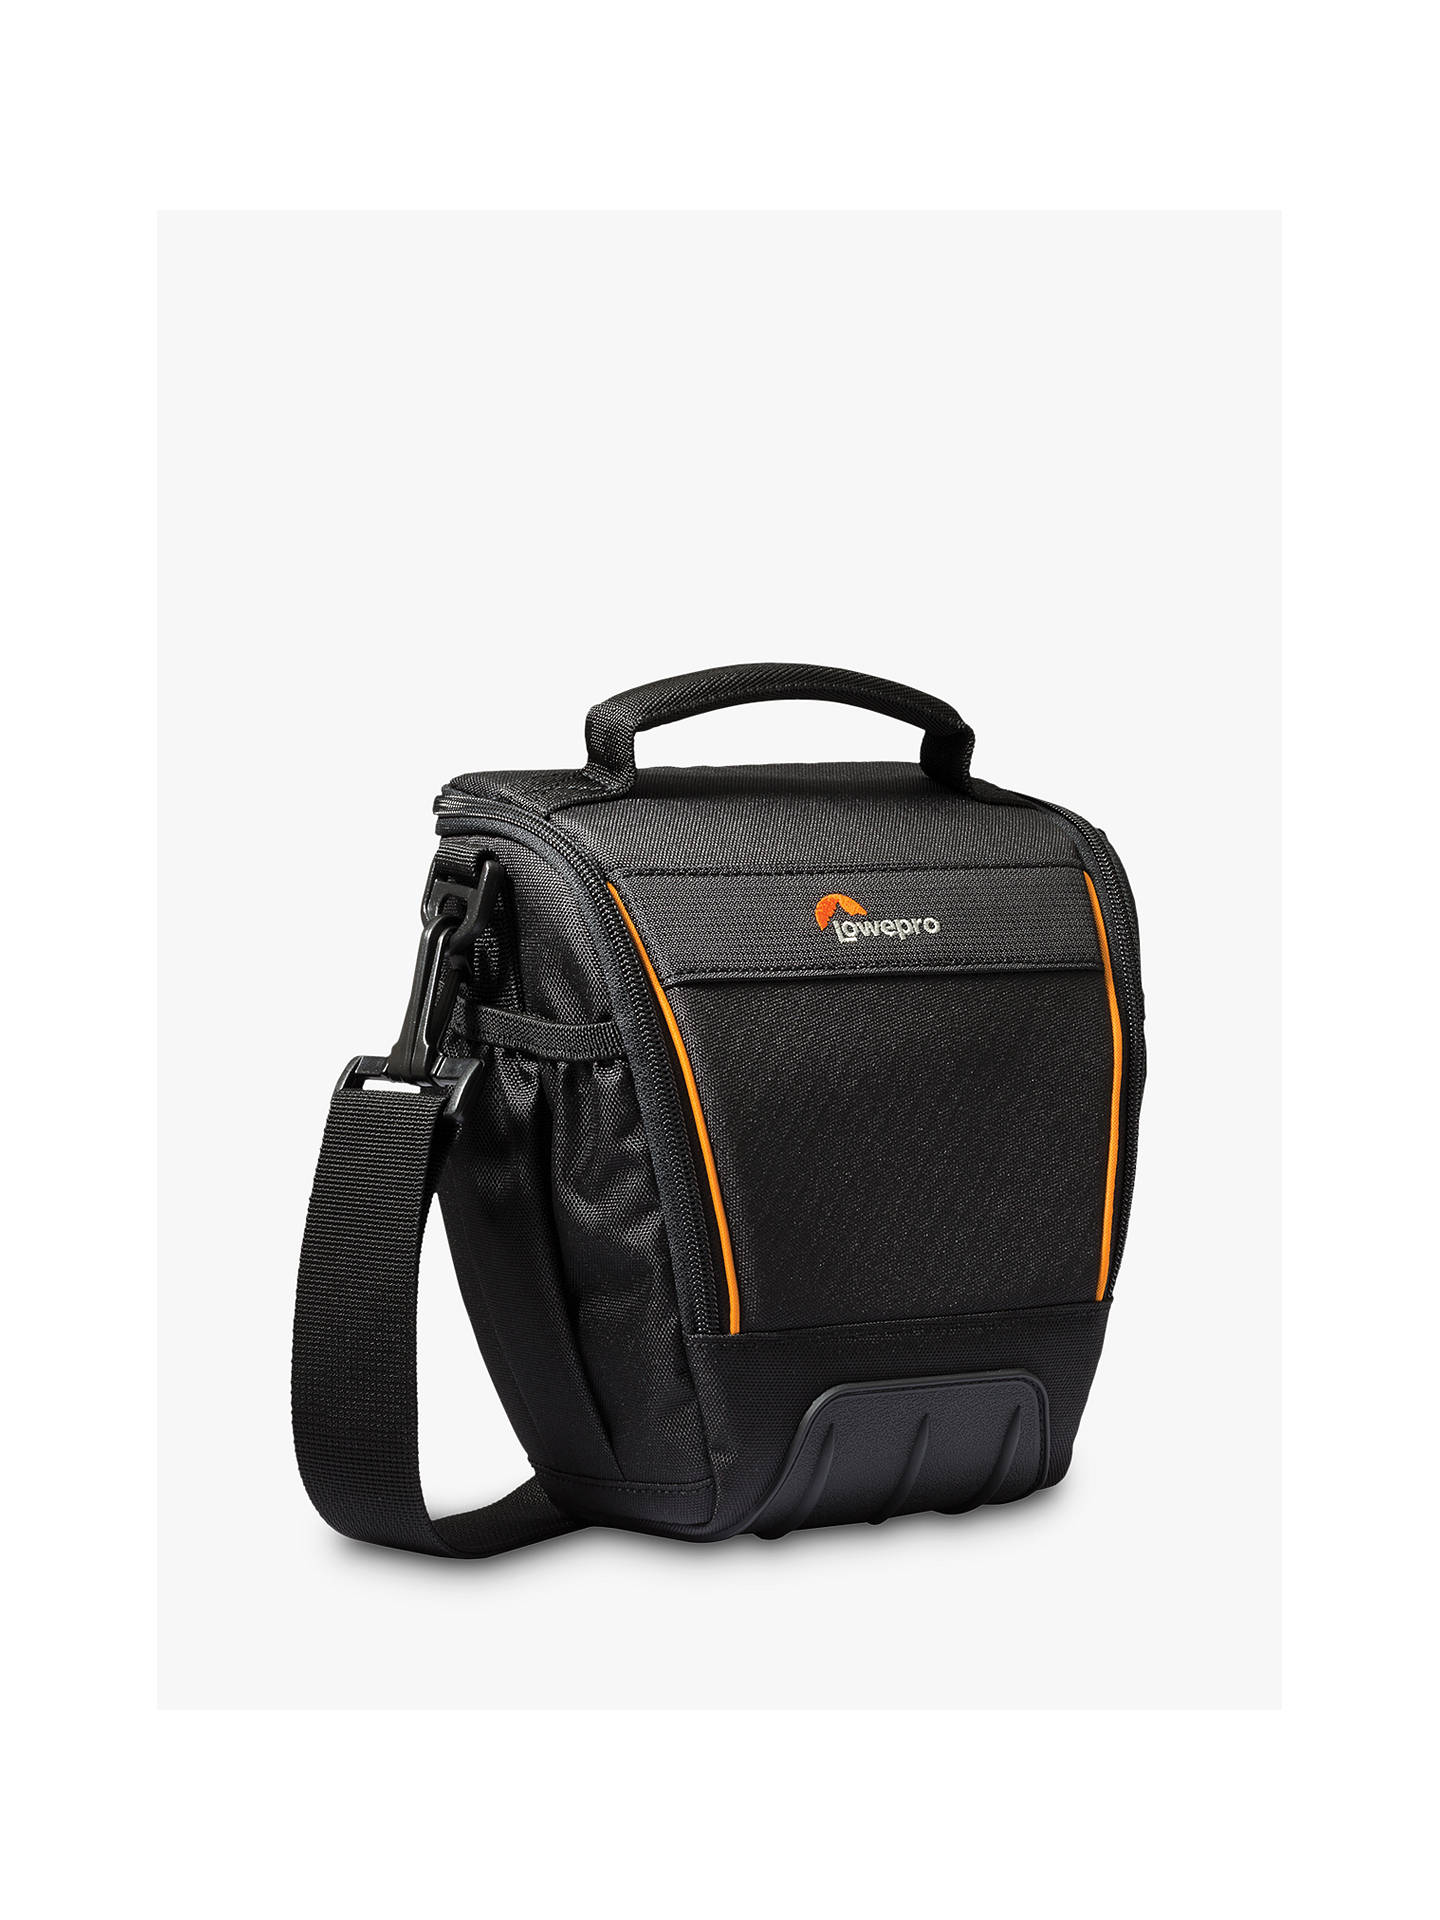 Lowepro Adventura Tlz 30 Ii Camera Shoulder Bag For Dslrs Large Cscs